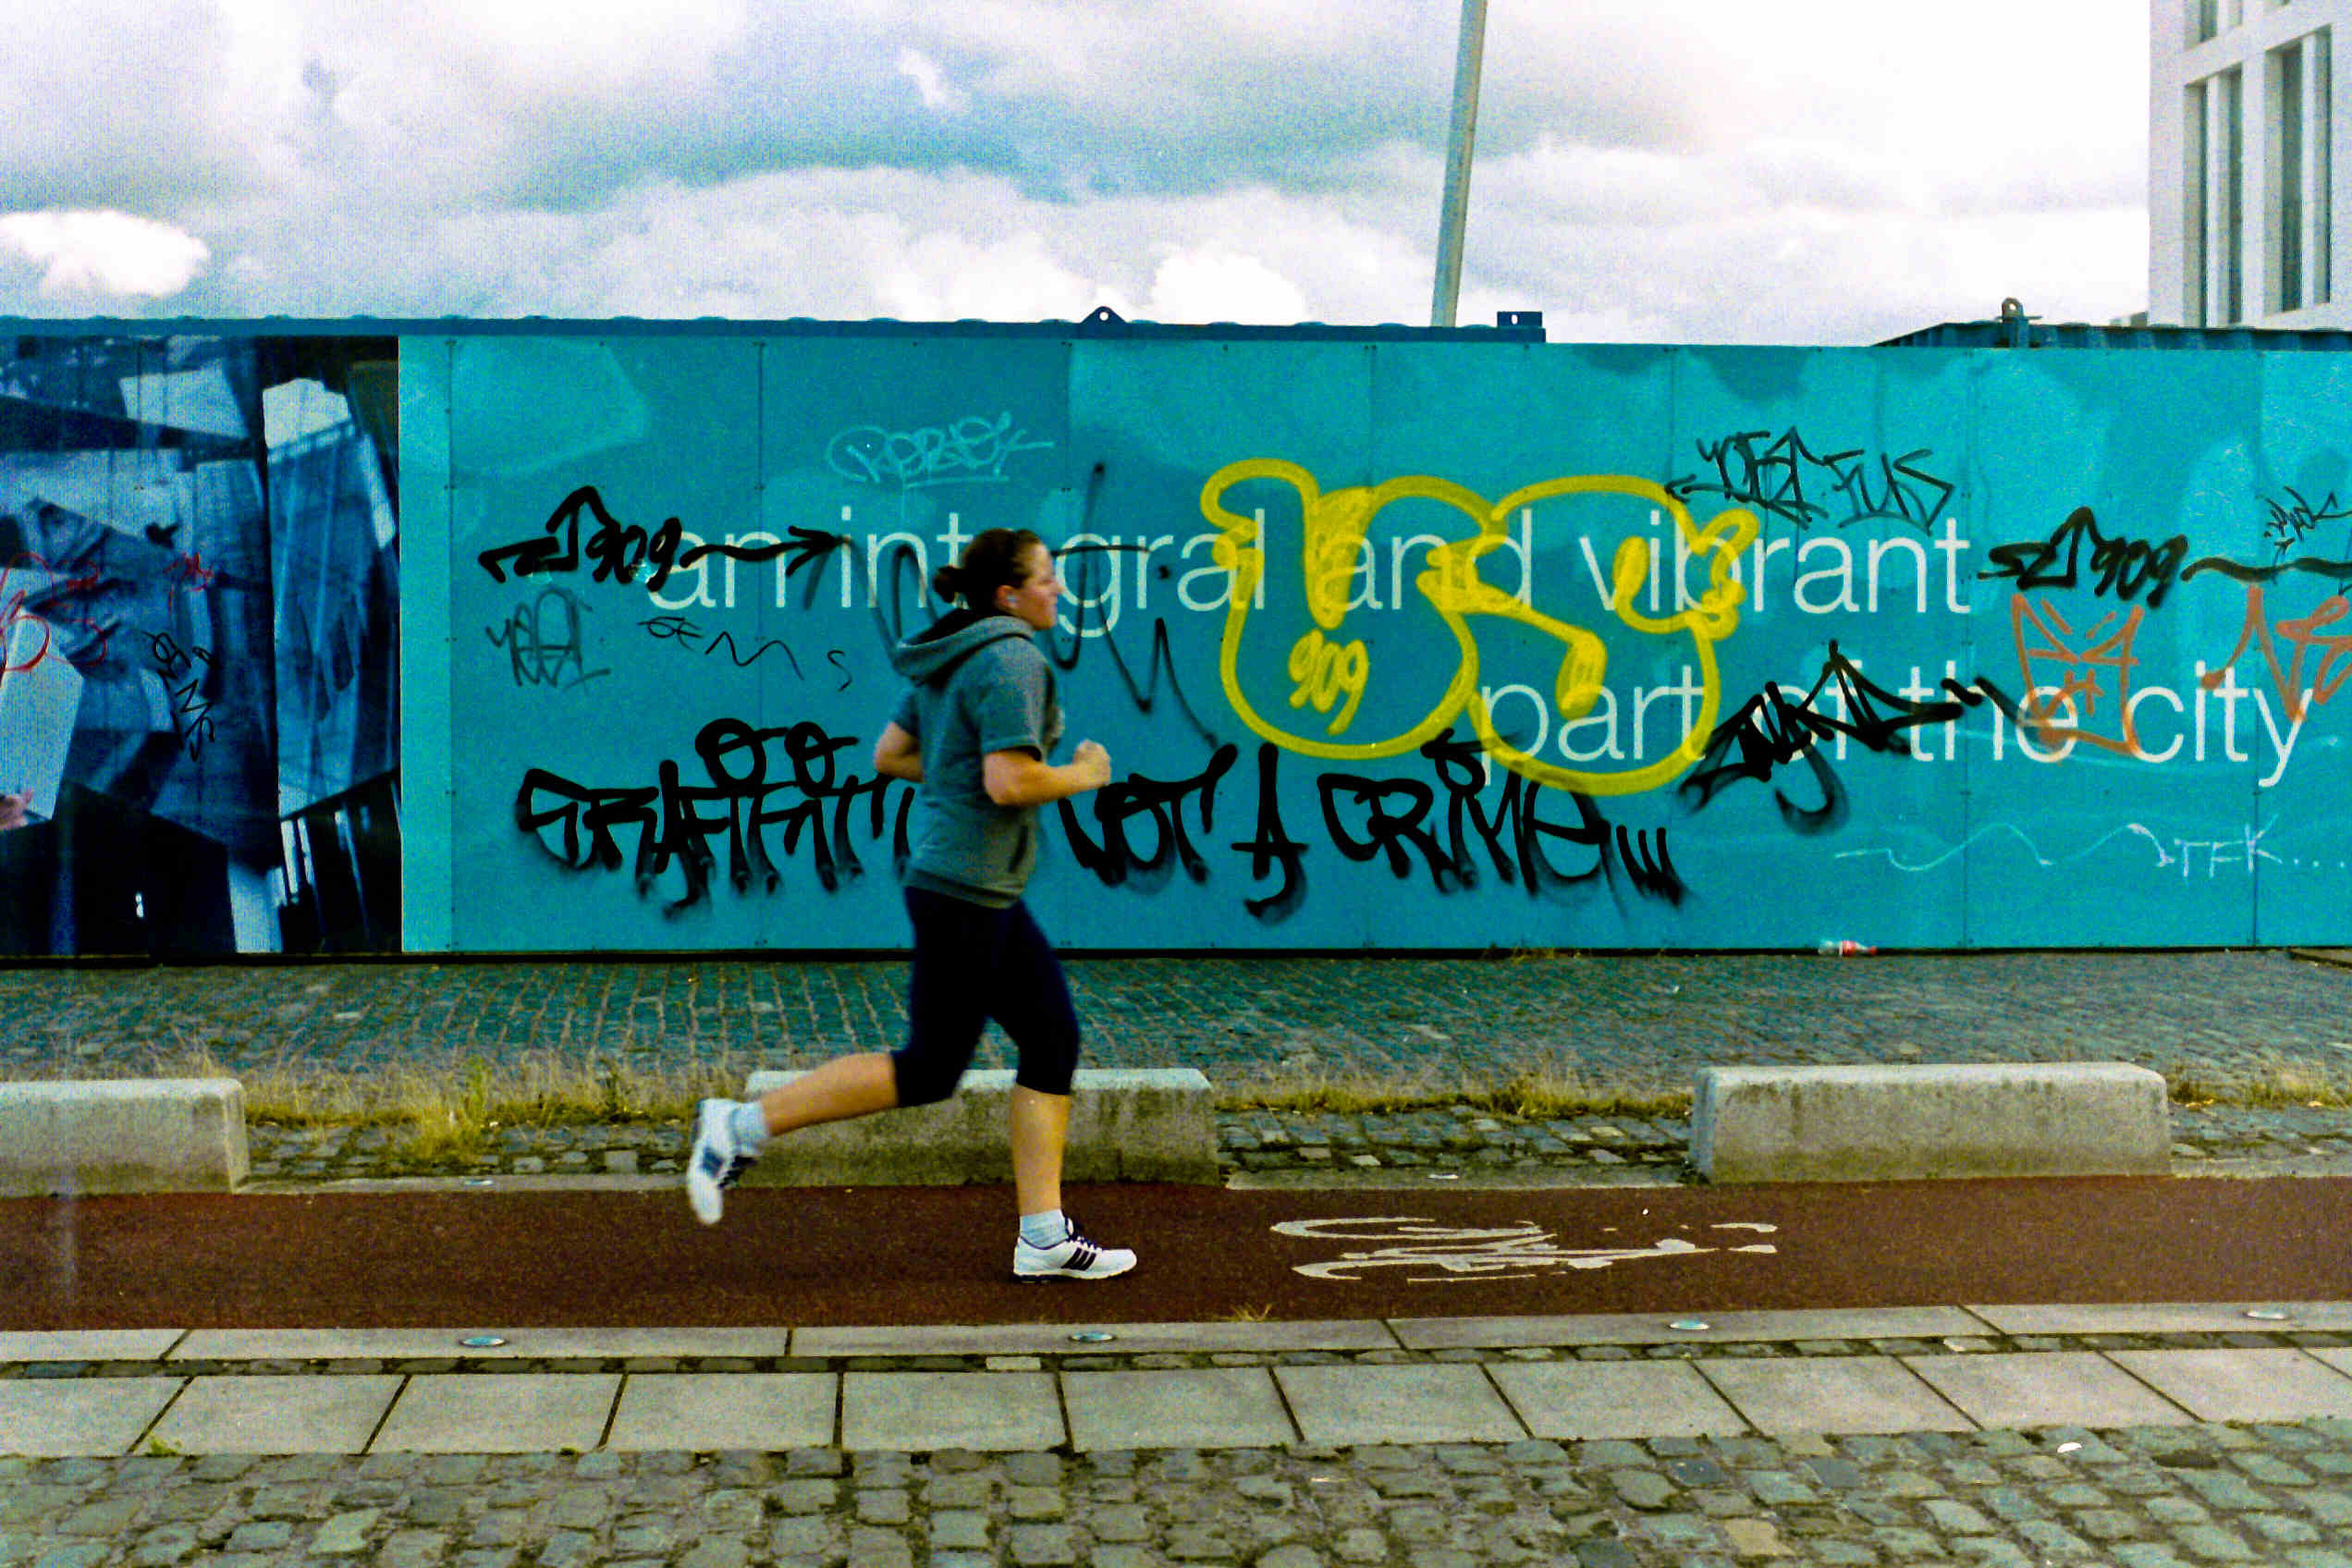 Woman running past hoarding with graffiti in Dublin docklands